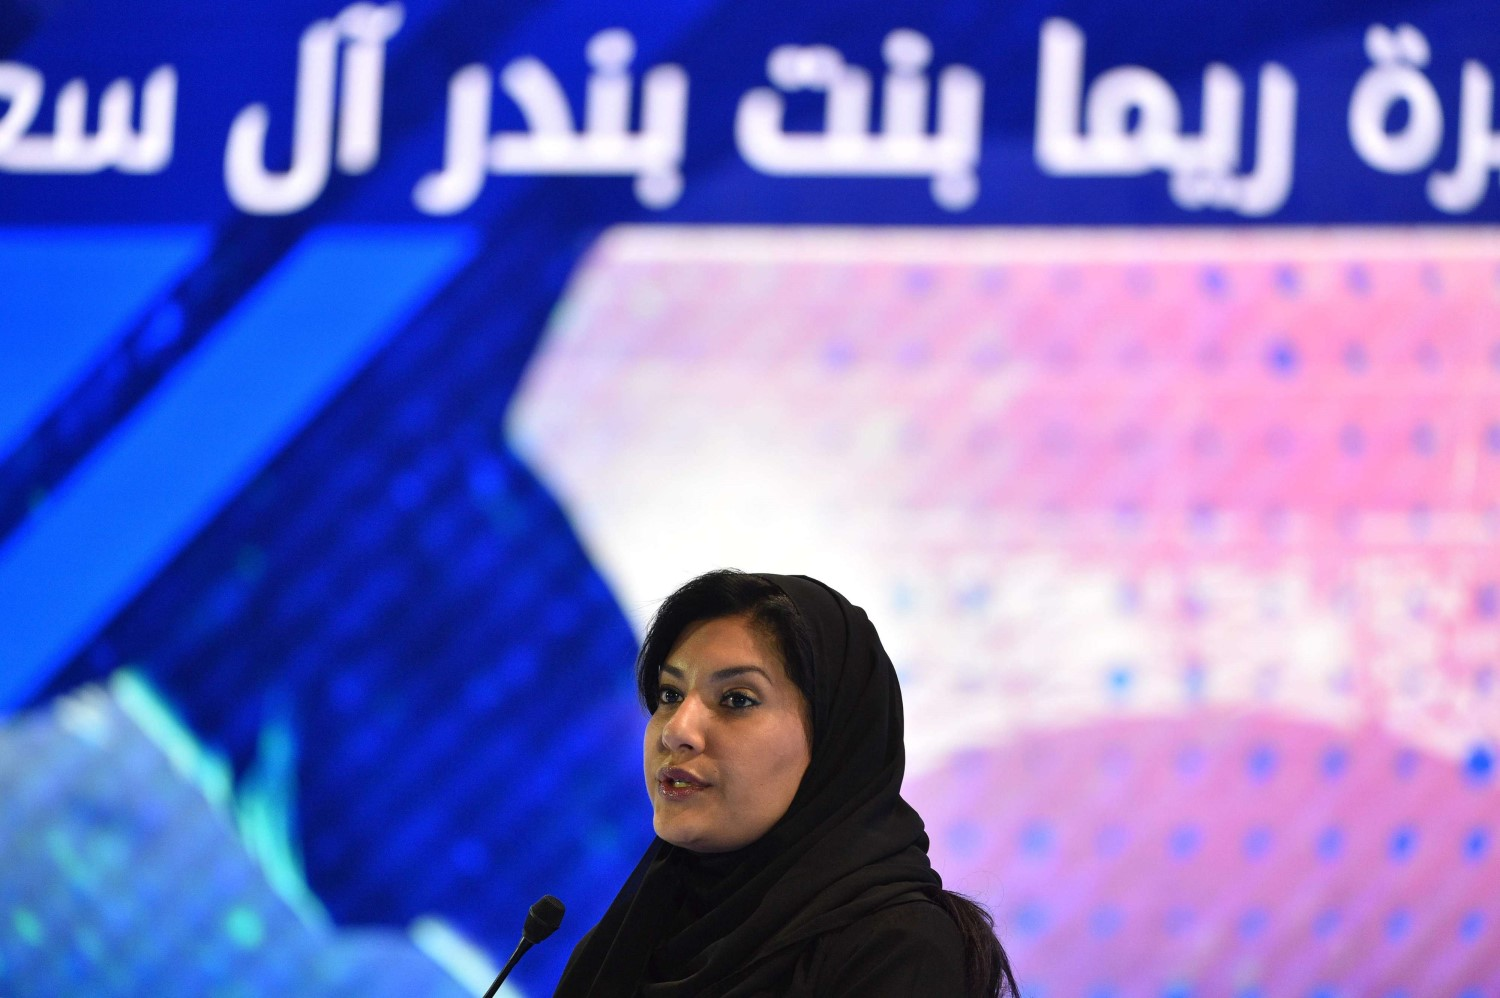 Saudi Princess Reema bint Bandar al-Saud speaks during the Future Investment Initiative (FII) conference in the capital Riyadh on October 24, 2018. (AFP)